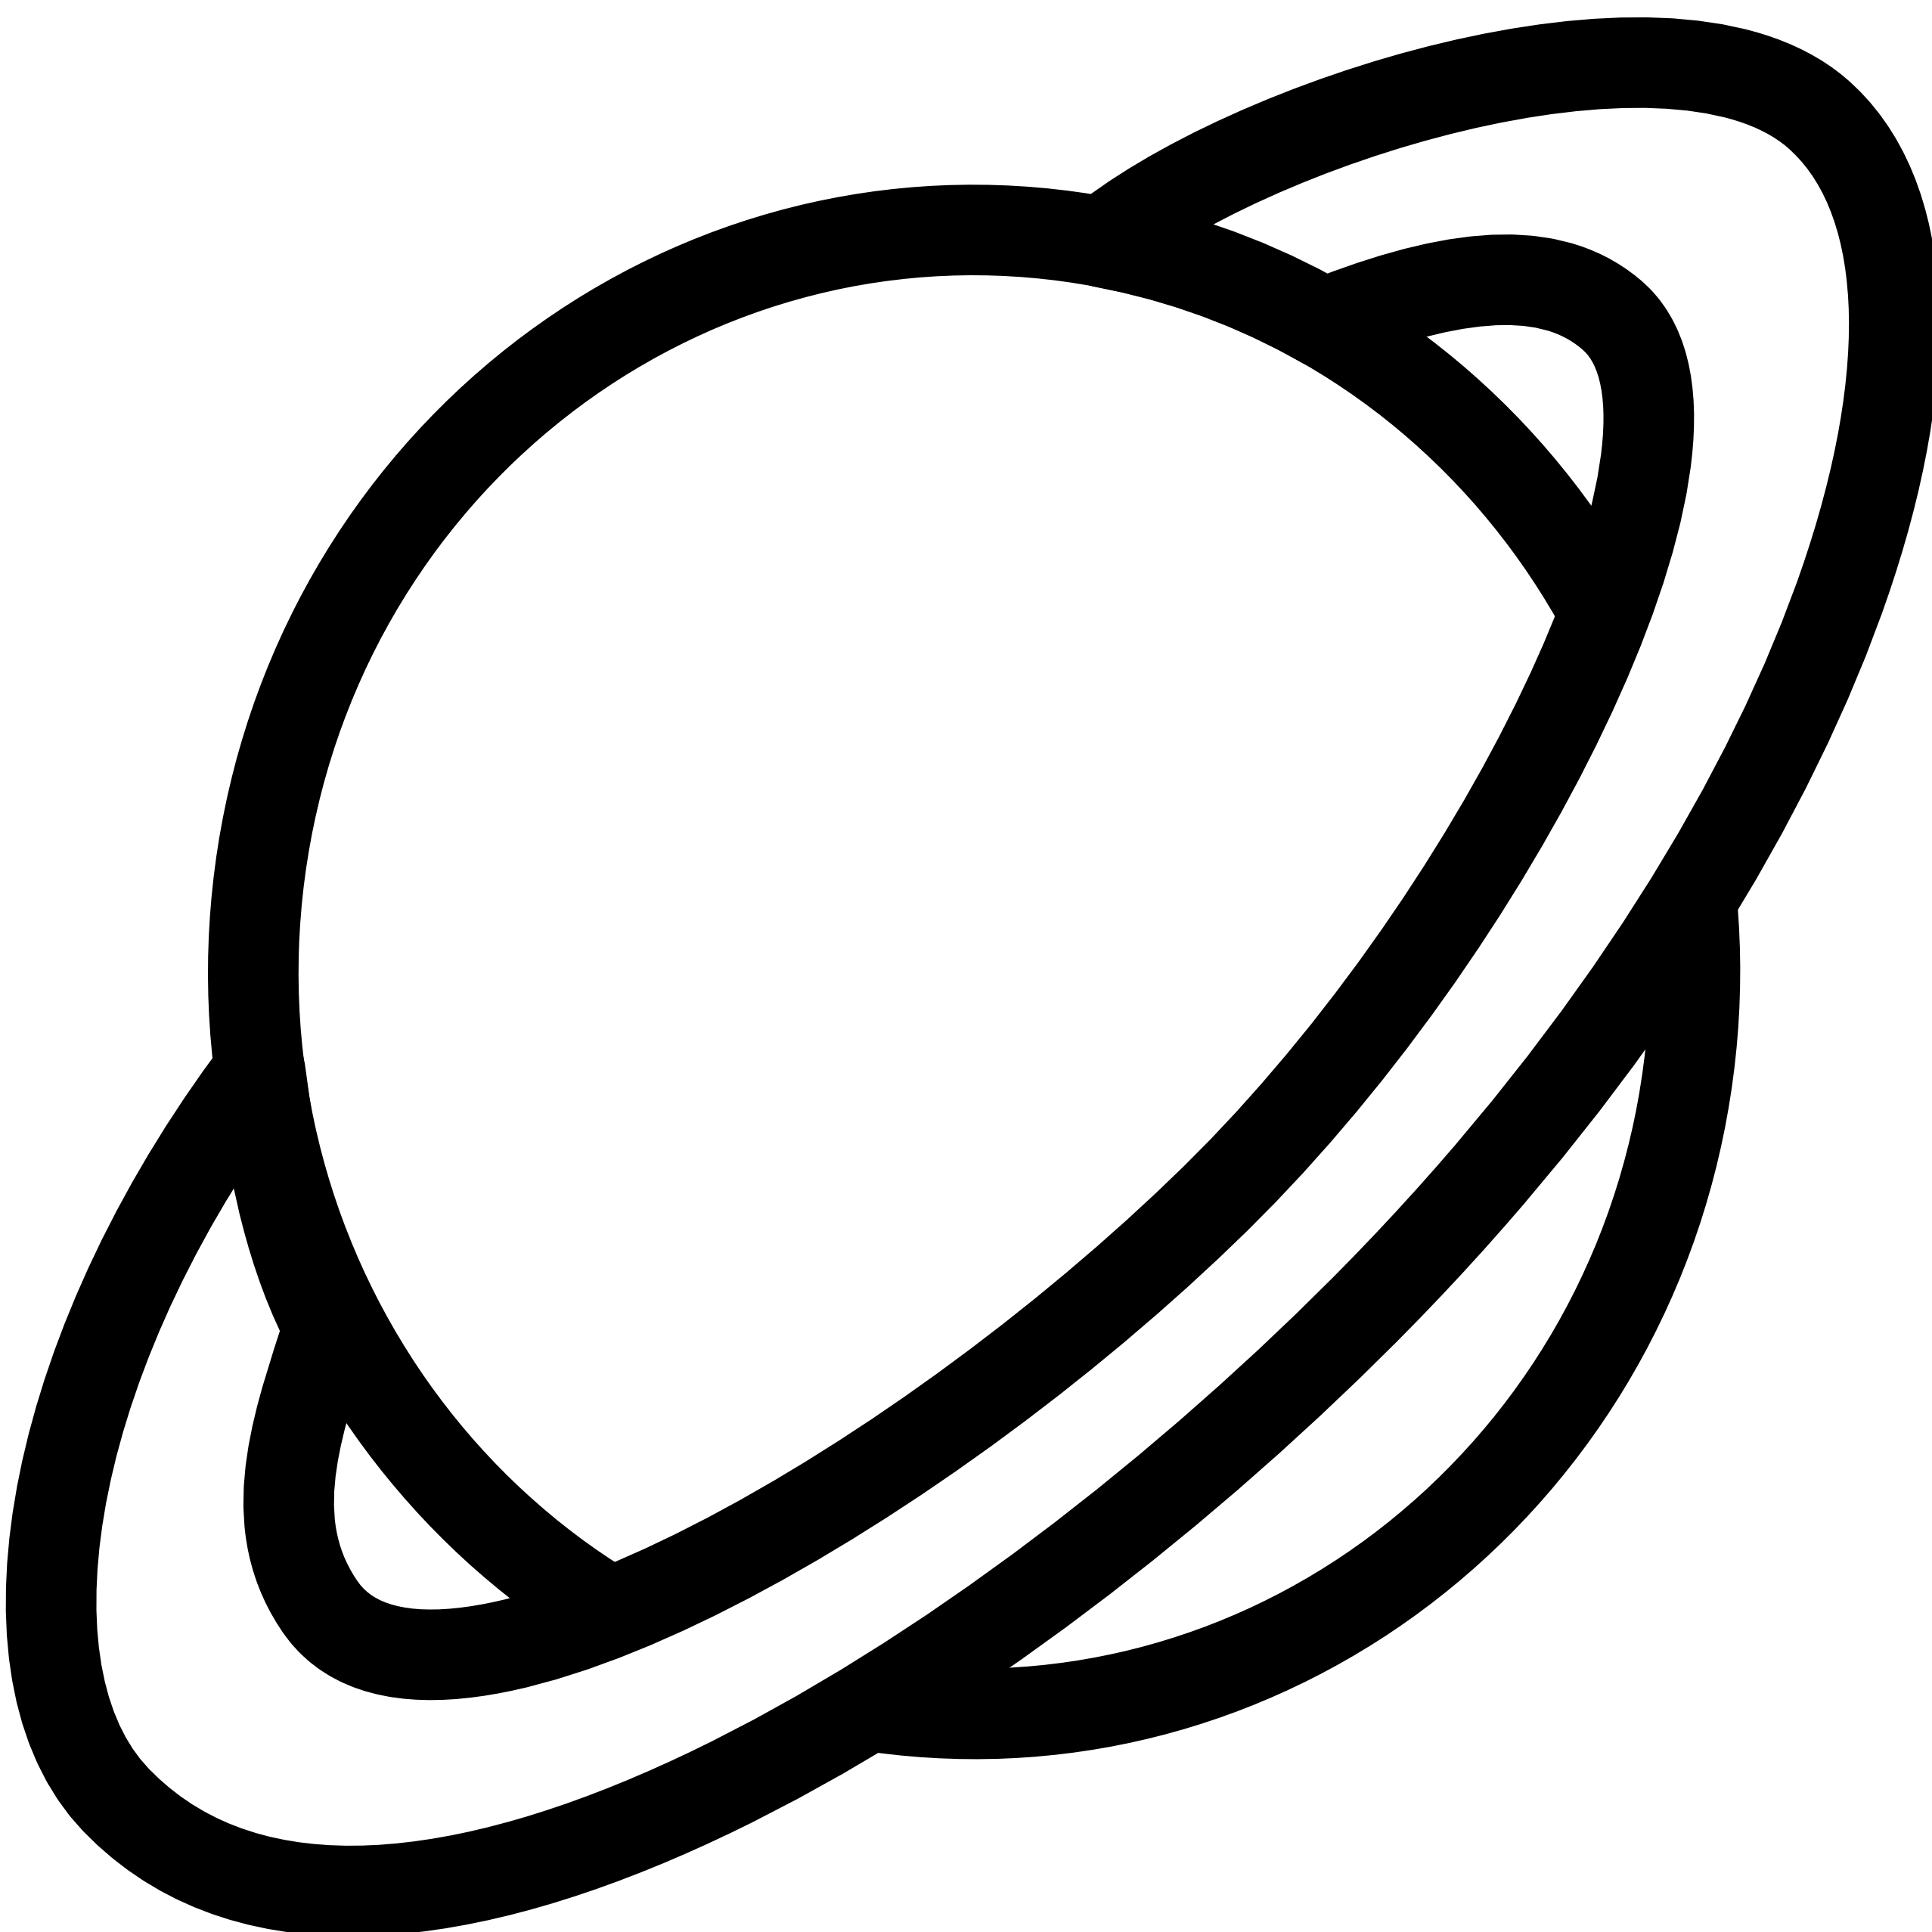 Saturn Clipart Black And White | Clipart Panda - Free ...